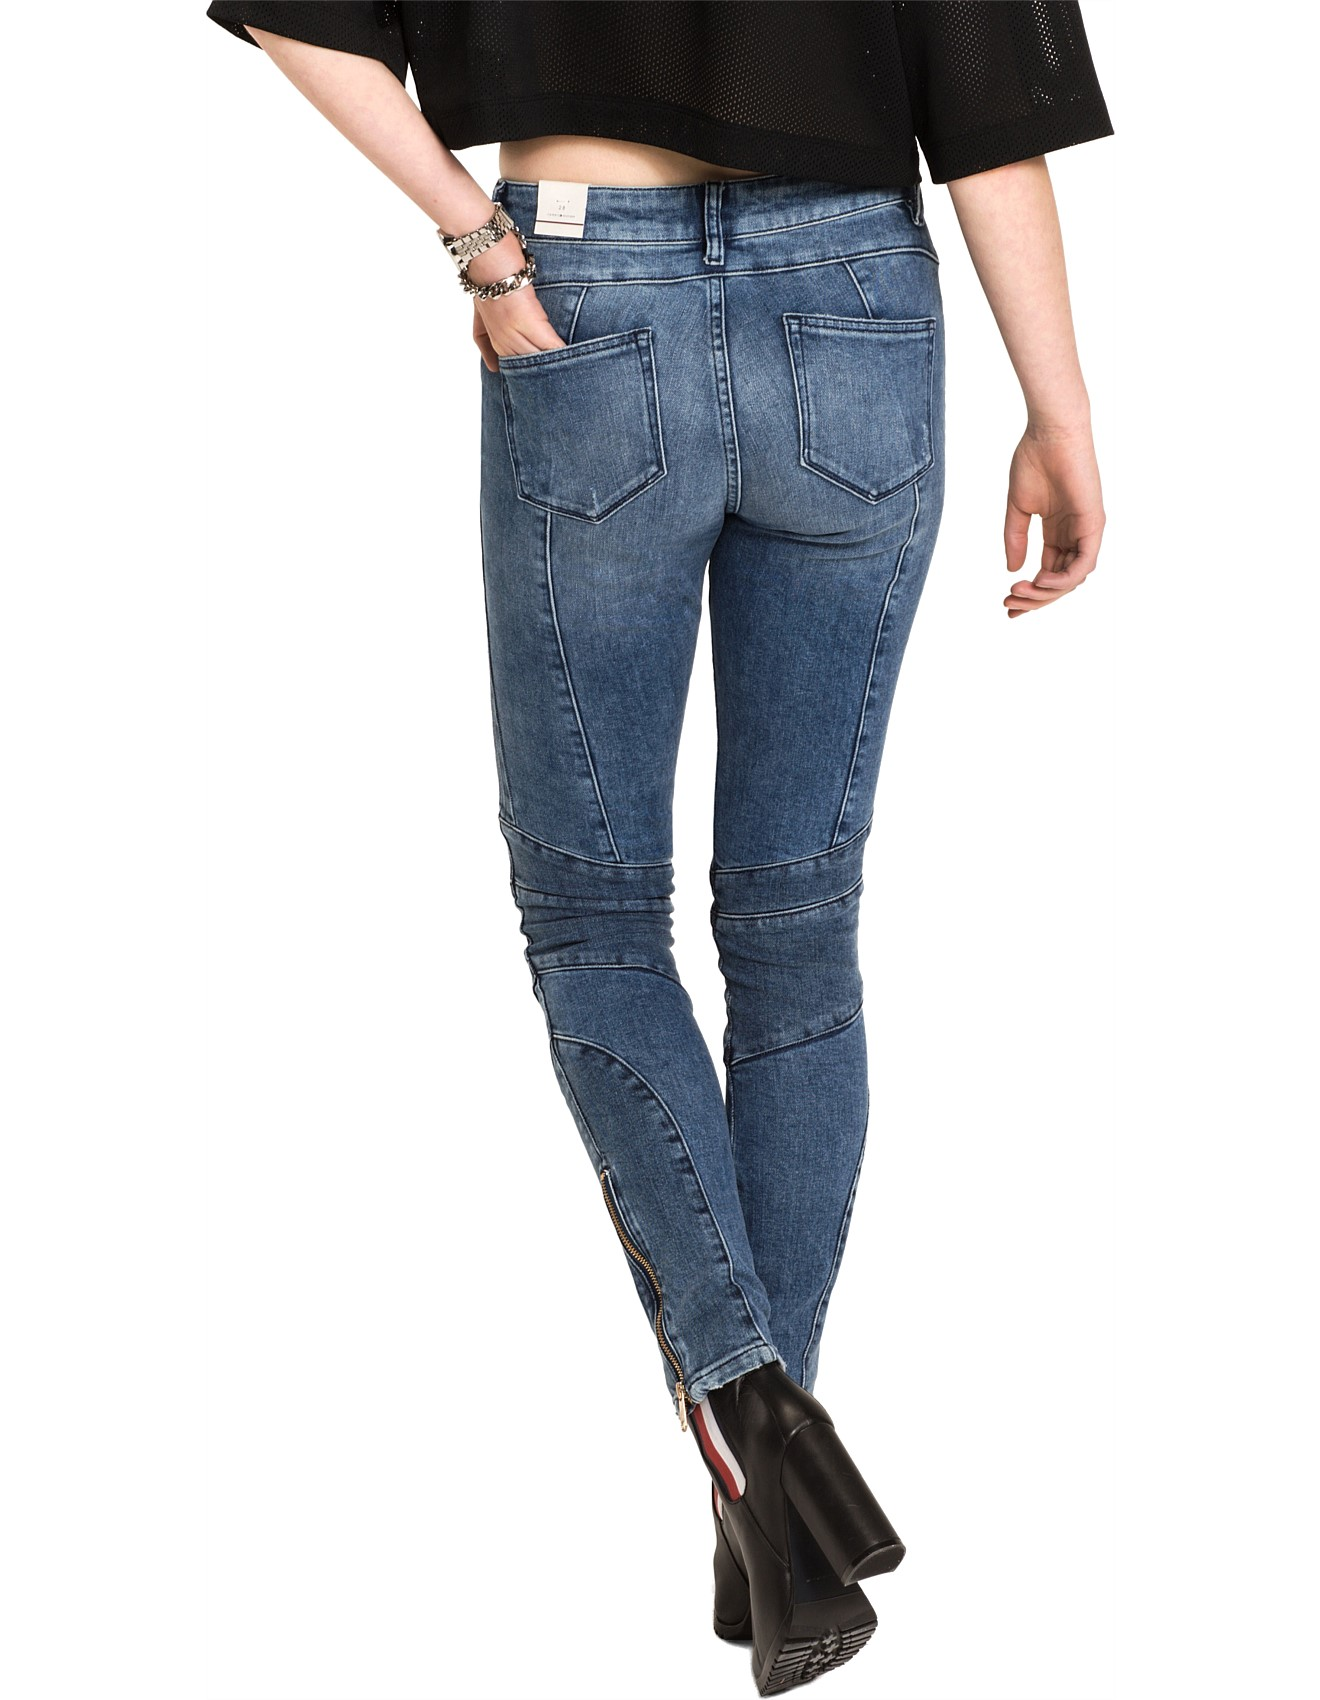 4190bbb0 Gigi Hadid Venice Jean Ankle Speed Special Offer. 1